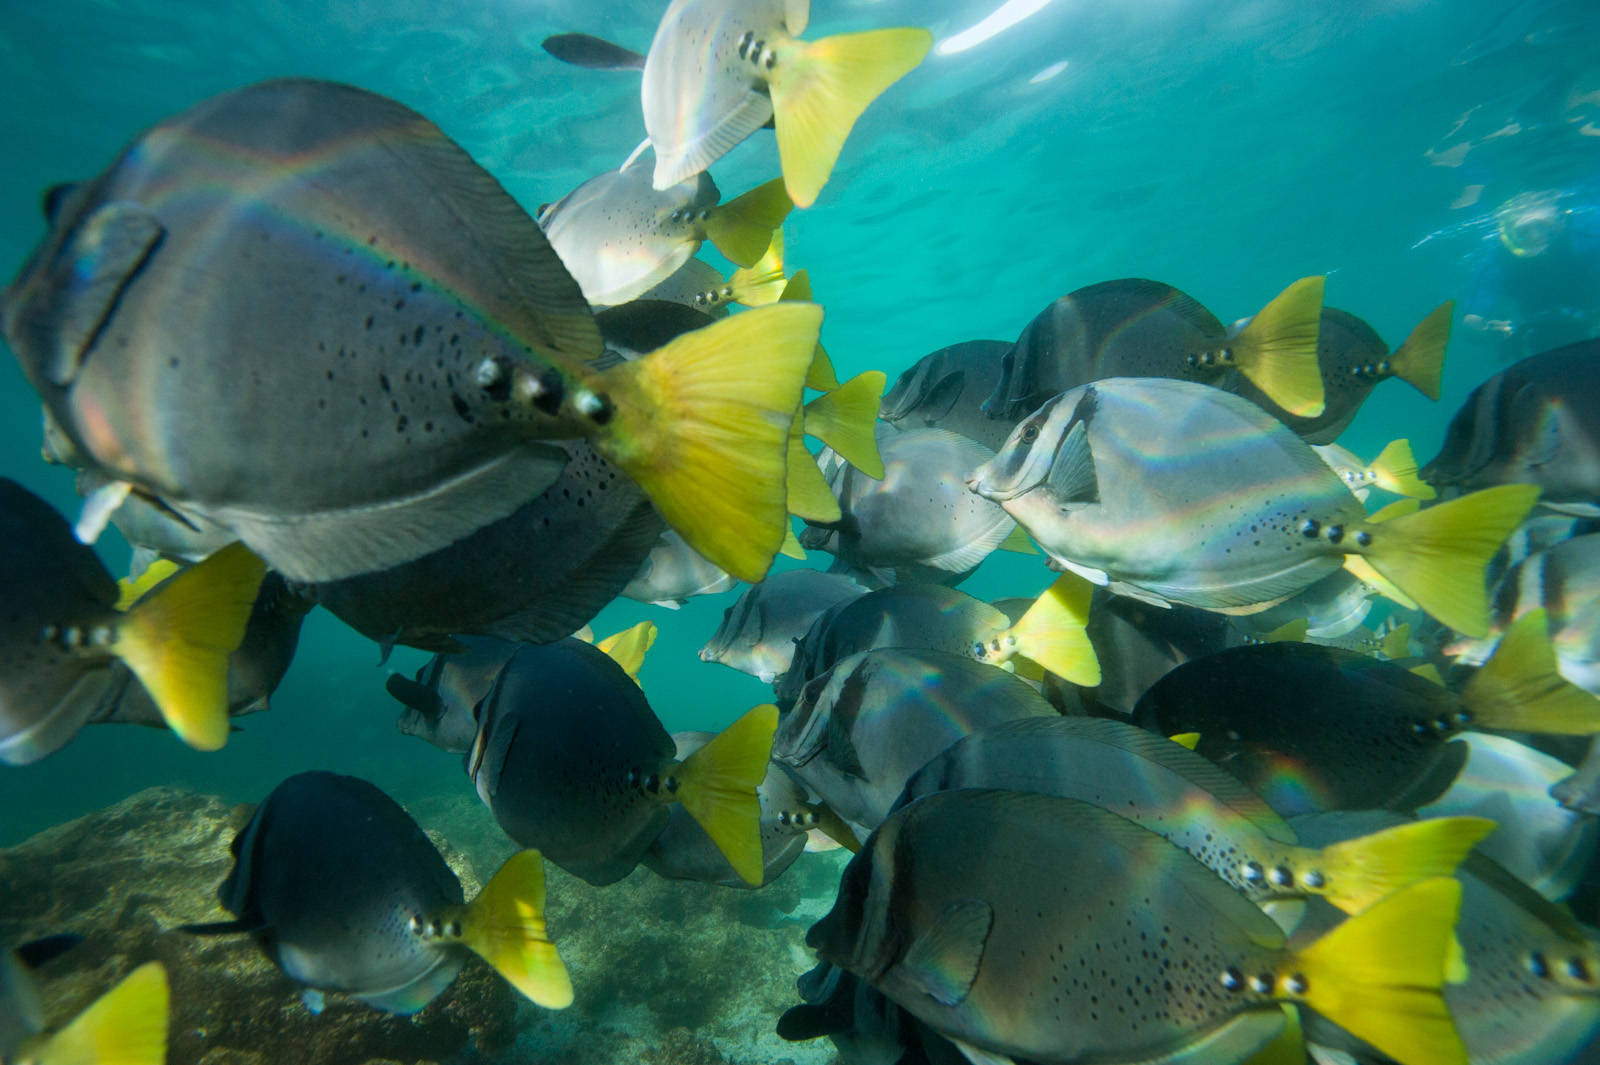 Photo: Razor surgeonfish (Prionurus laticlavius) in Galapagos National Park.